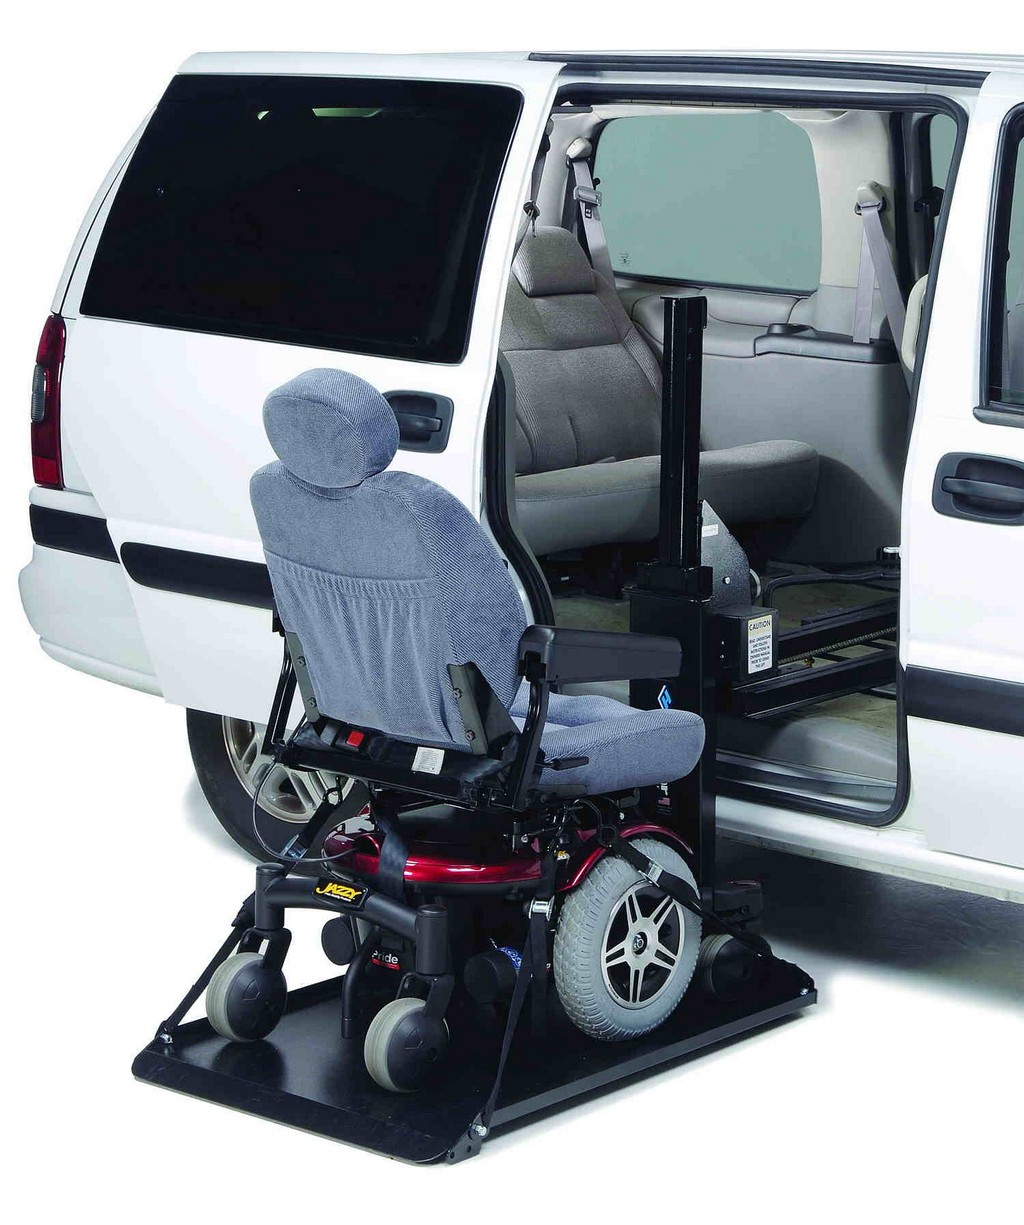 install wheelchair lifts for vans houston, wheelchair vertical lifts, wheelchair lifts for home, hydraulic wheelchair lifts for van